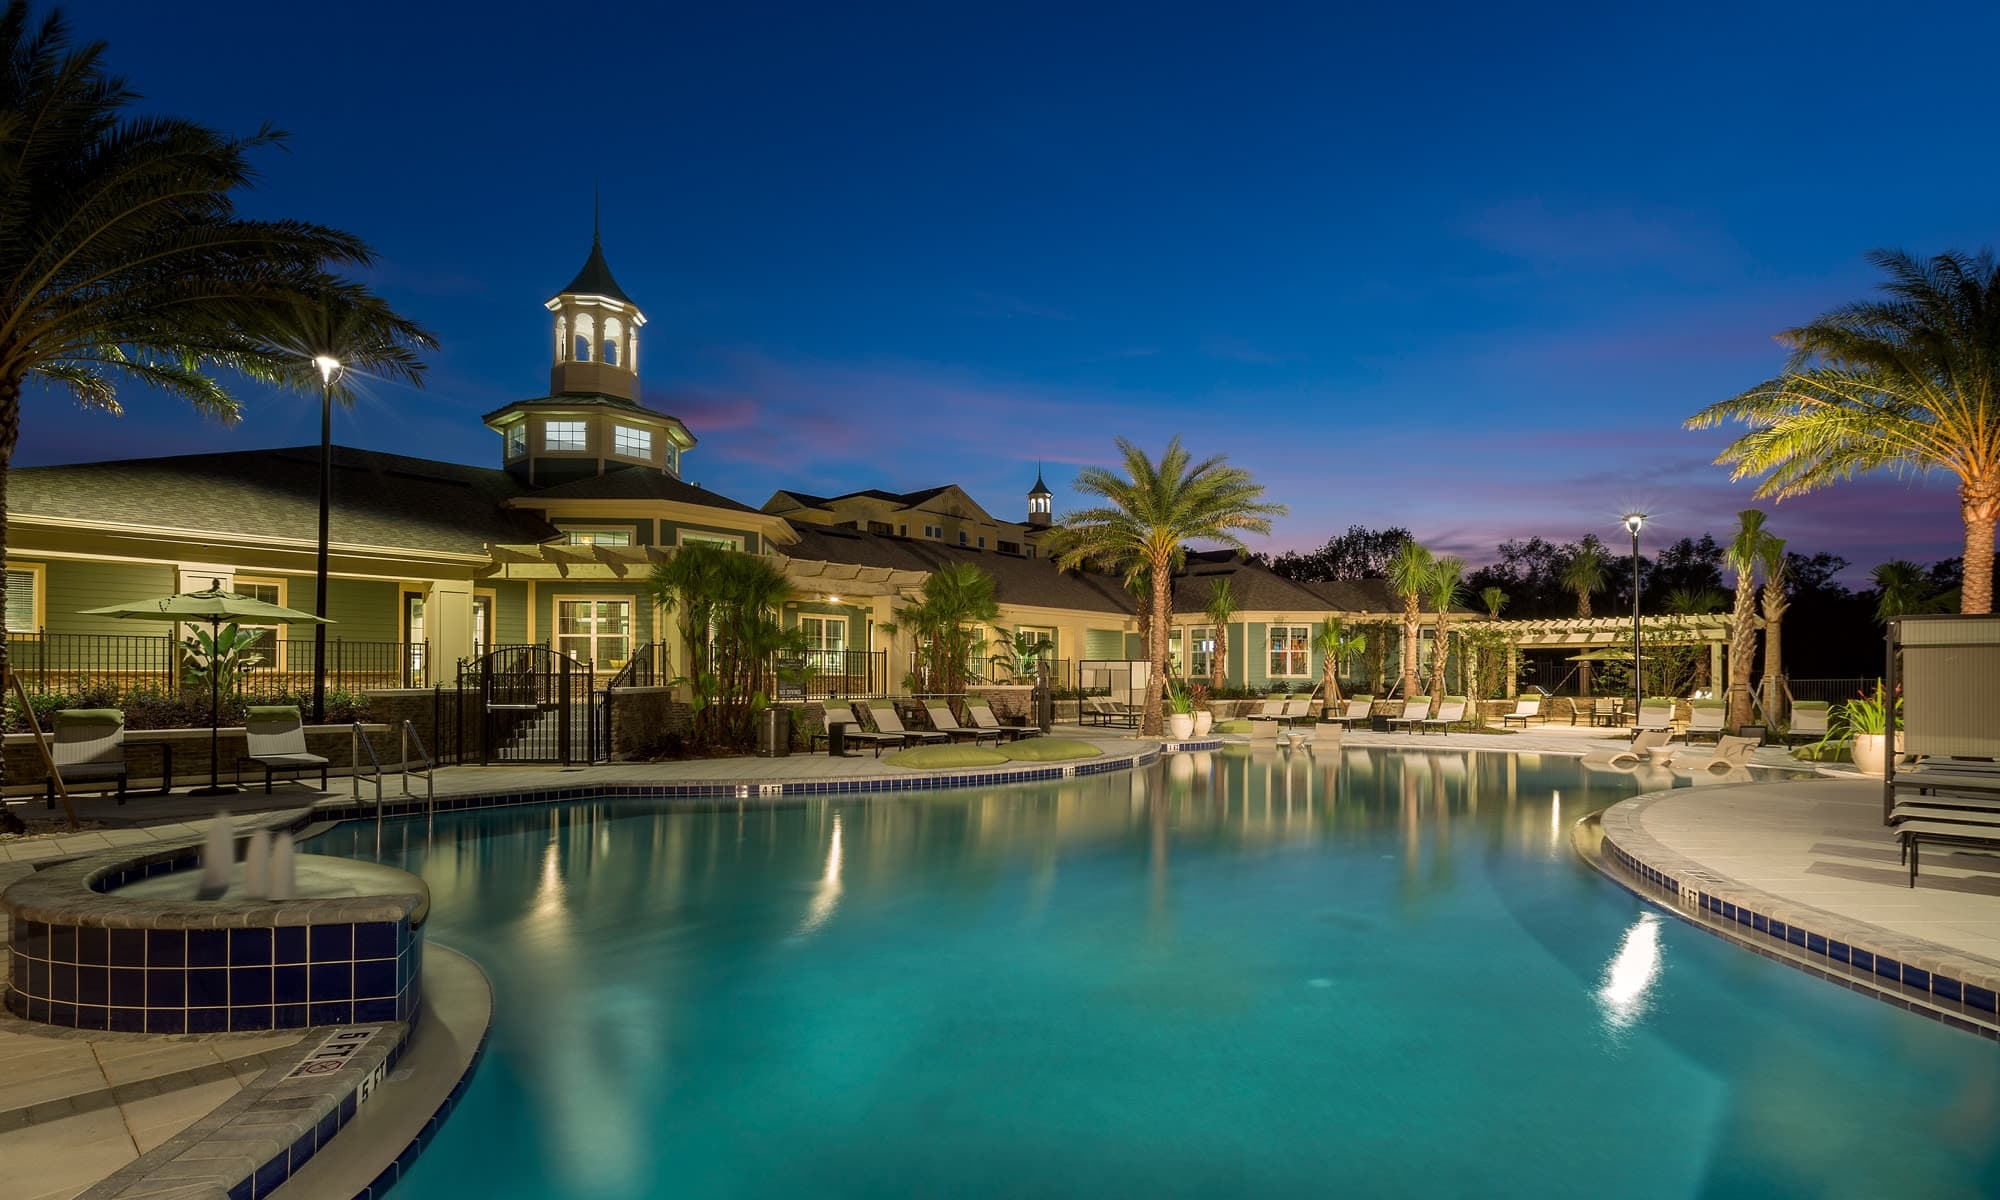 Apartments in Winter Springs, FL